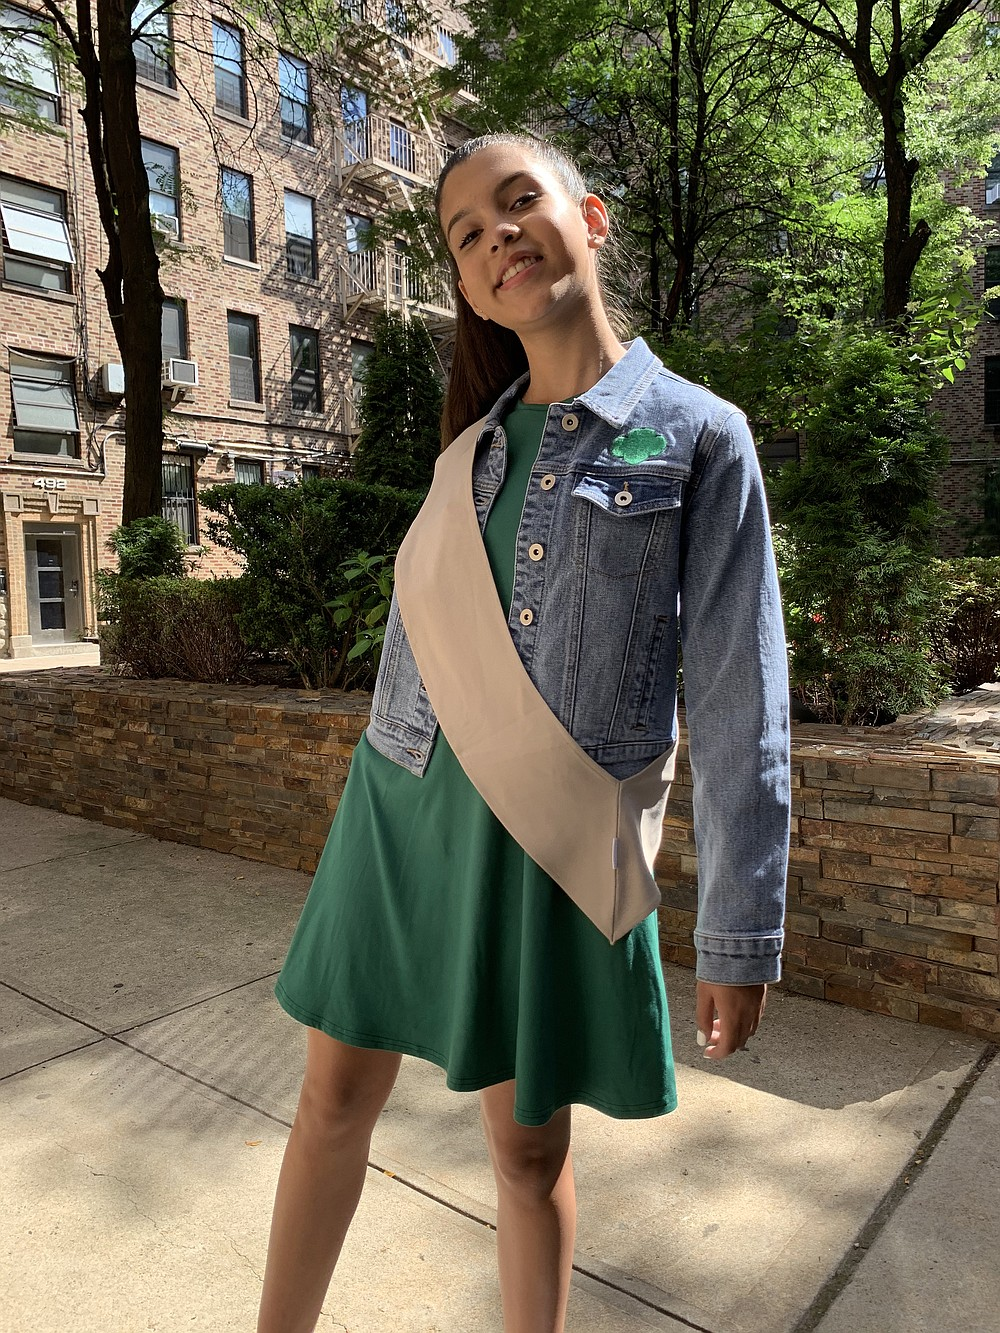 In an undated image provided by the Girl Scouts of the USA, the Girl Scouts have new uniforms. A vest designed for the modern Girl Scout must have pockets, and those pockets must be large enough to fit the largest model of the iPhone. (Girl Scouts of the USA via The New York Times) -- NO SALES; FOR EDITORIAL USE ONLY WITH NYT STORY GIRL SCOUTS UNIFORM BY JESSICA TESTA FOR AUG. 25, 2020. ALL OTHER USE PROHIBITED. --